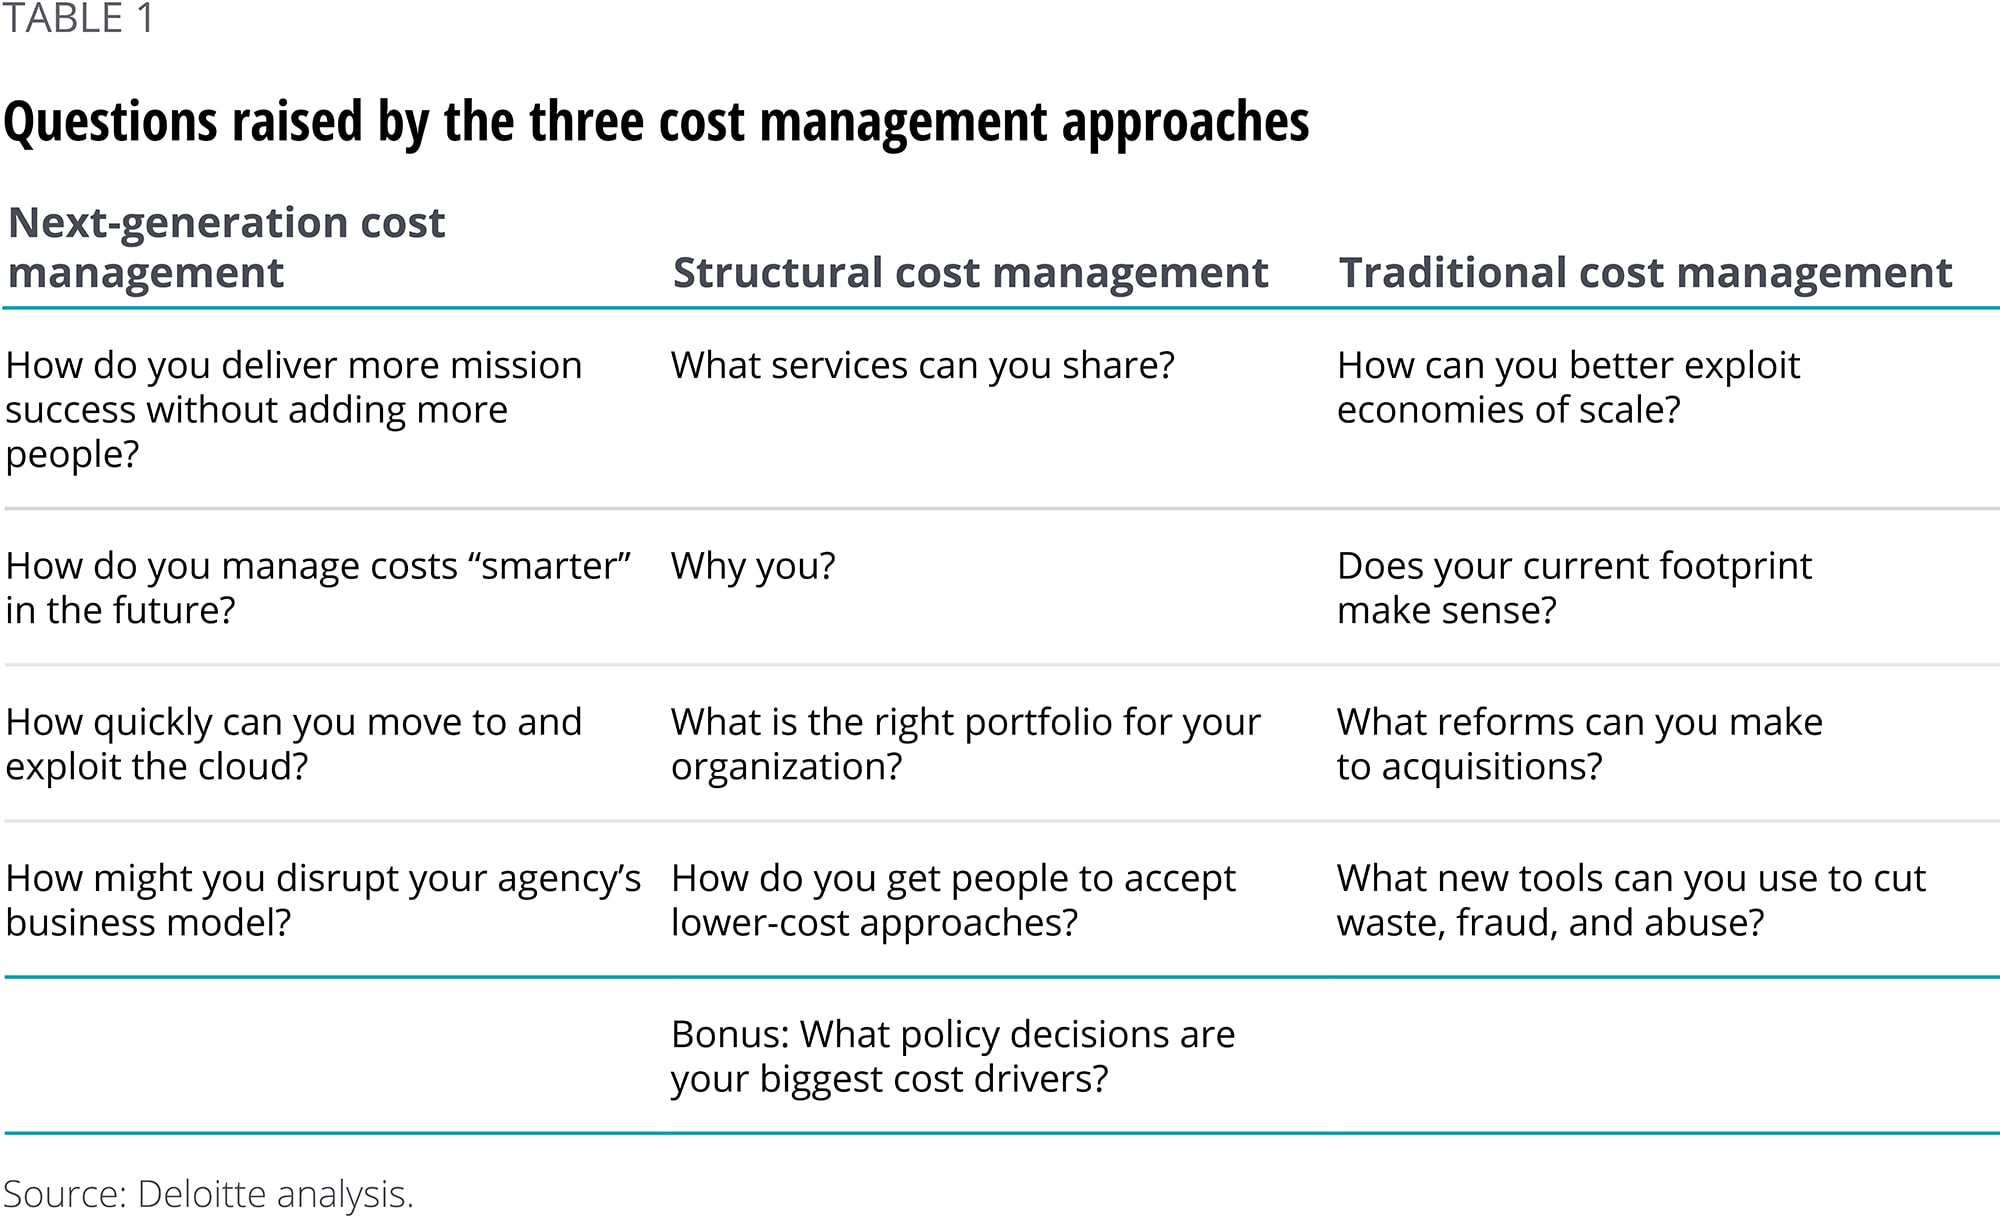 Questions raised by the three cost management approaches